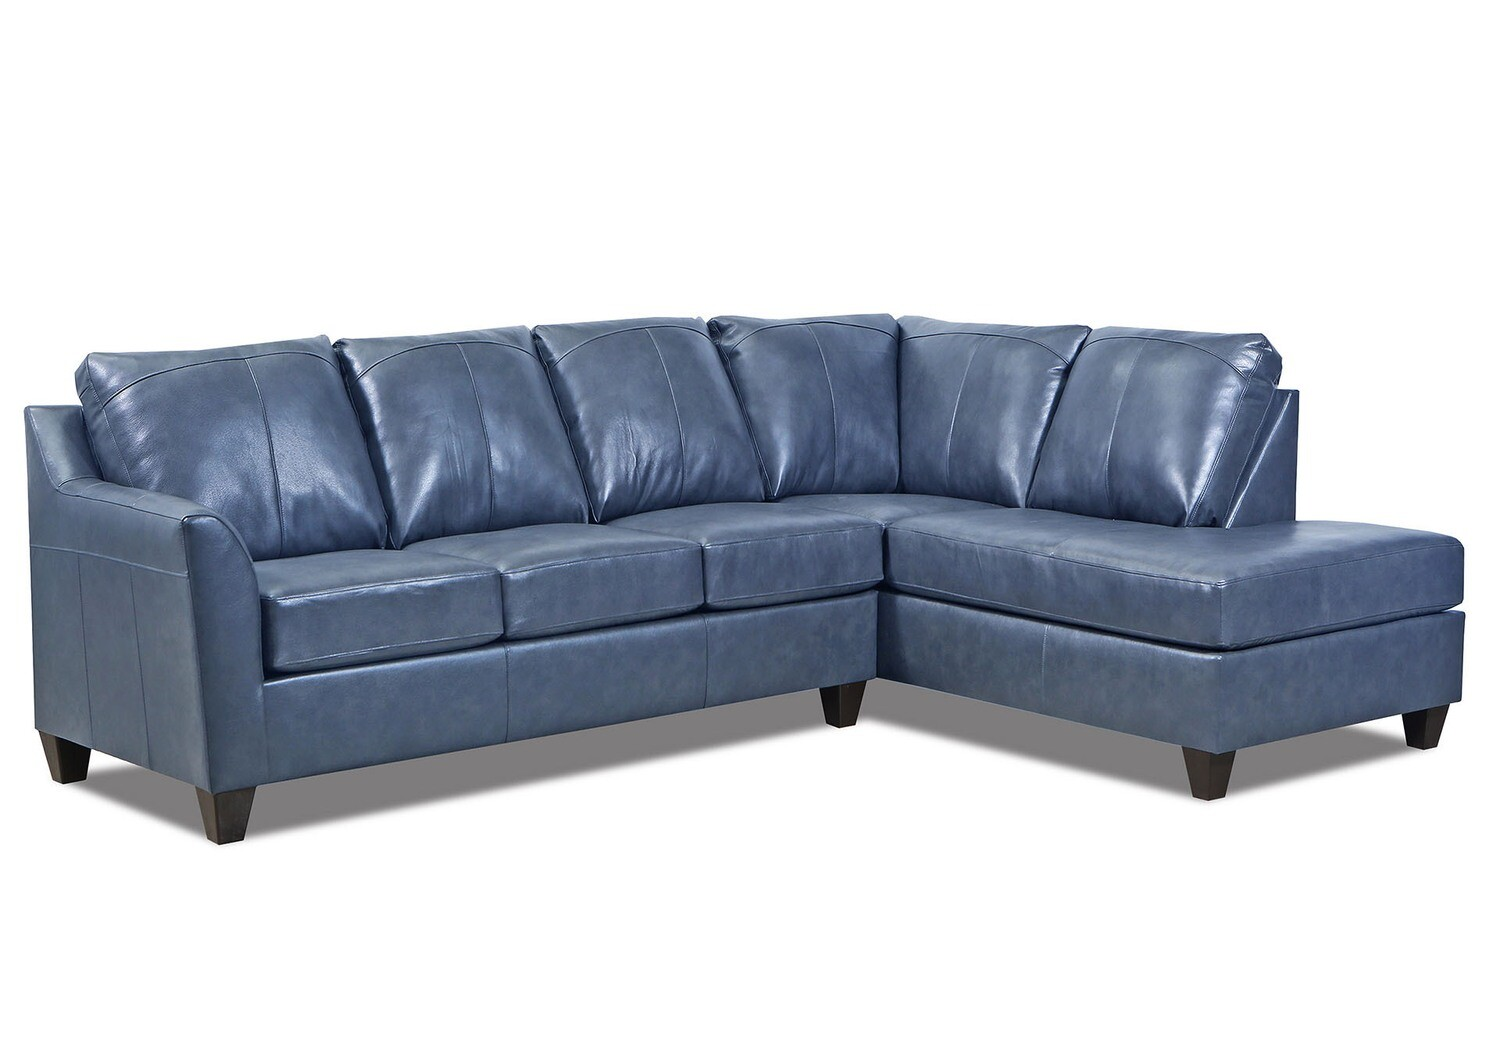 2029 Lane Furniture Leather Shale Sectional